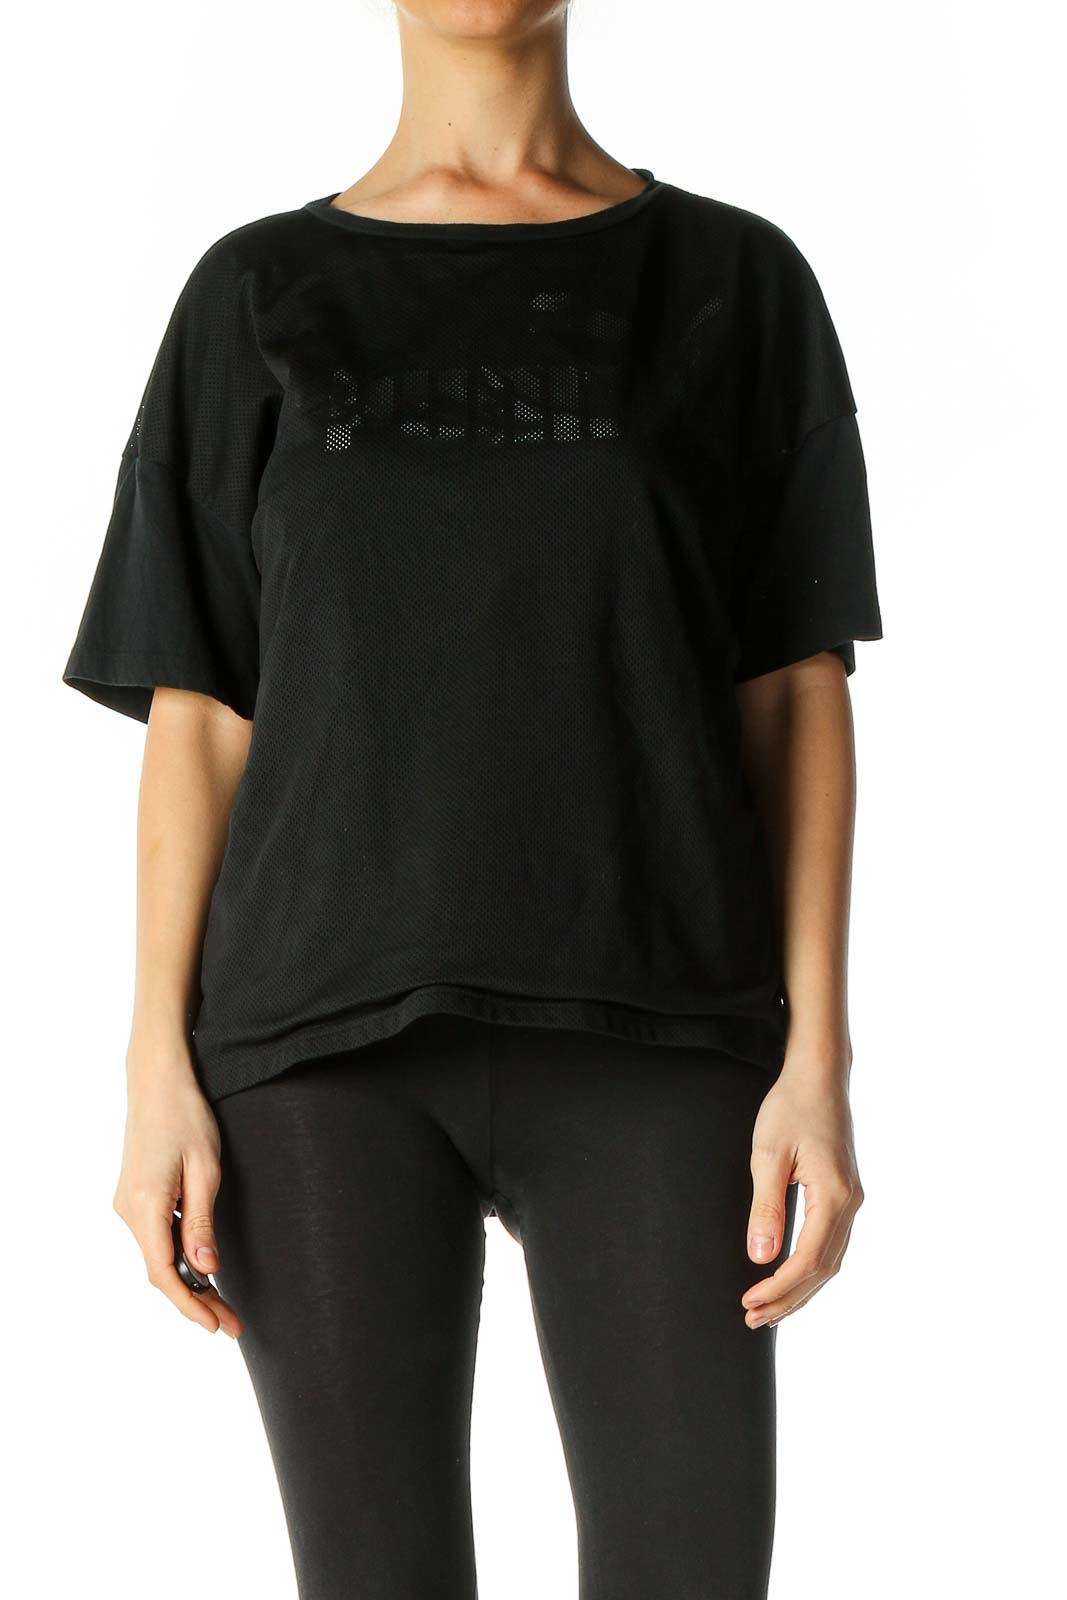 Black Solid Activewear T-Shirt Front